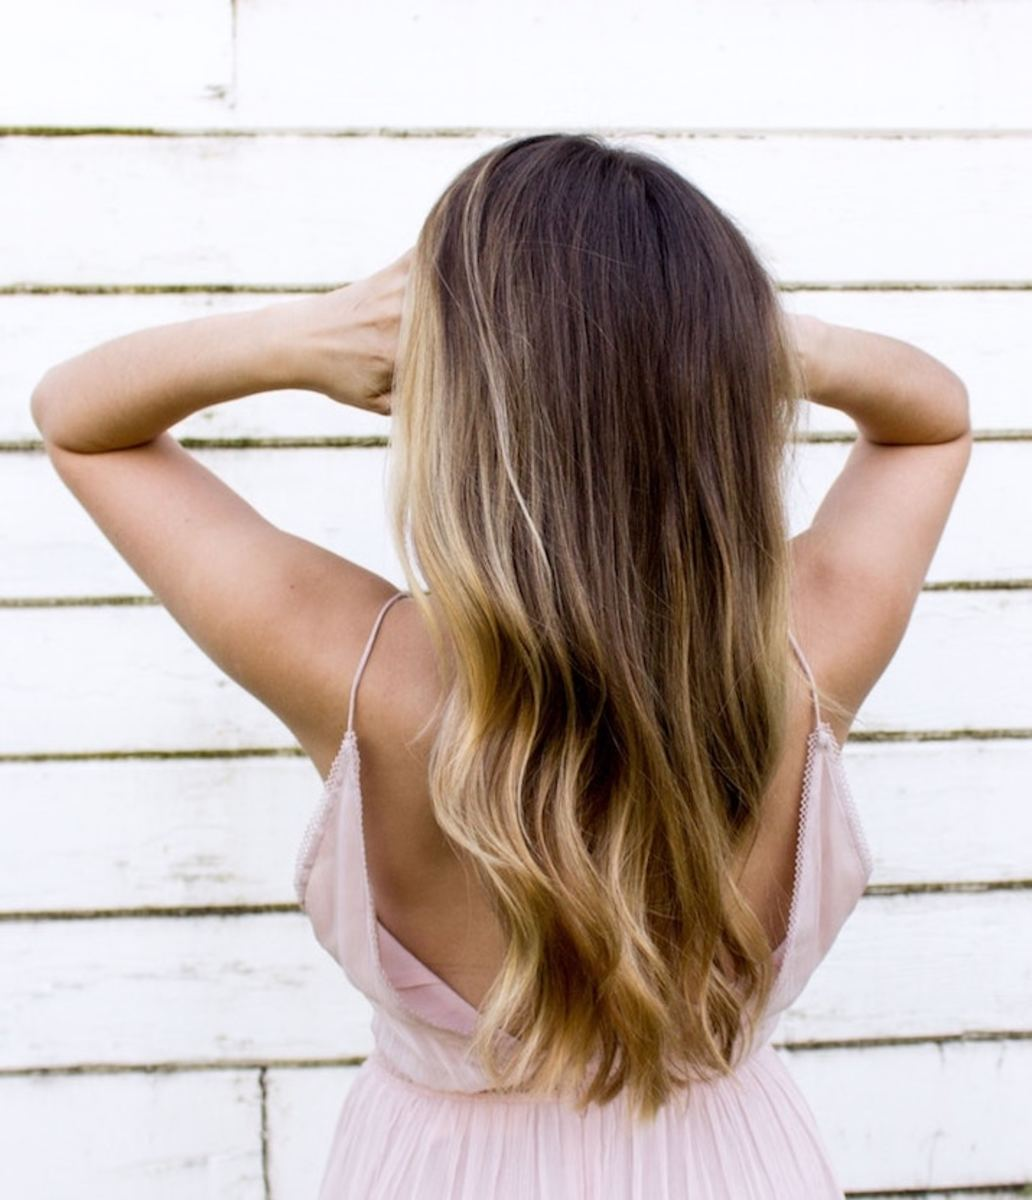 best all-natural hair care routine for healthy shiny hair